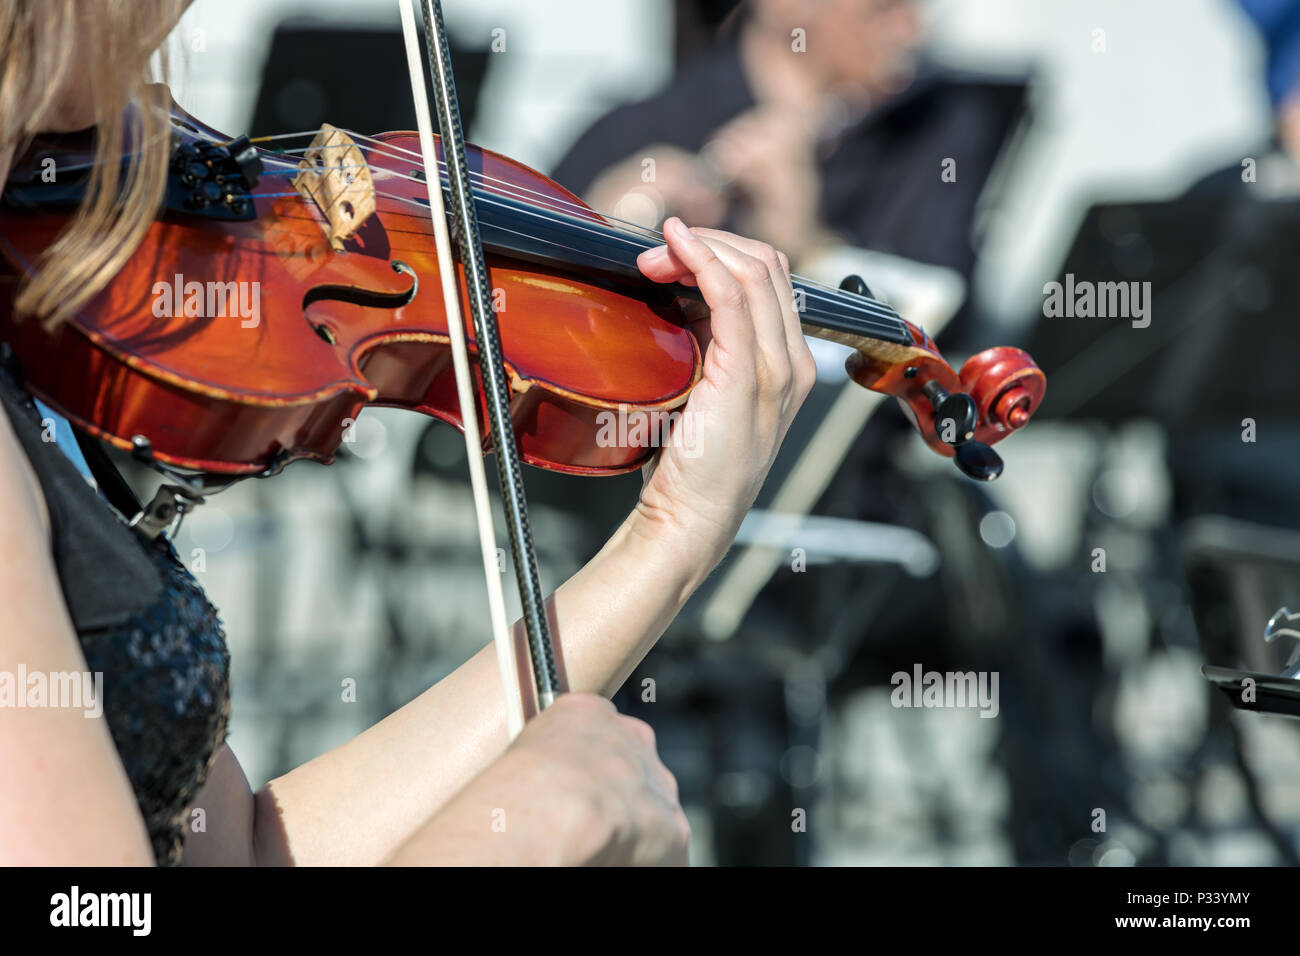 musician playing violin instrument on street concert. closeup view - Stock Image